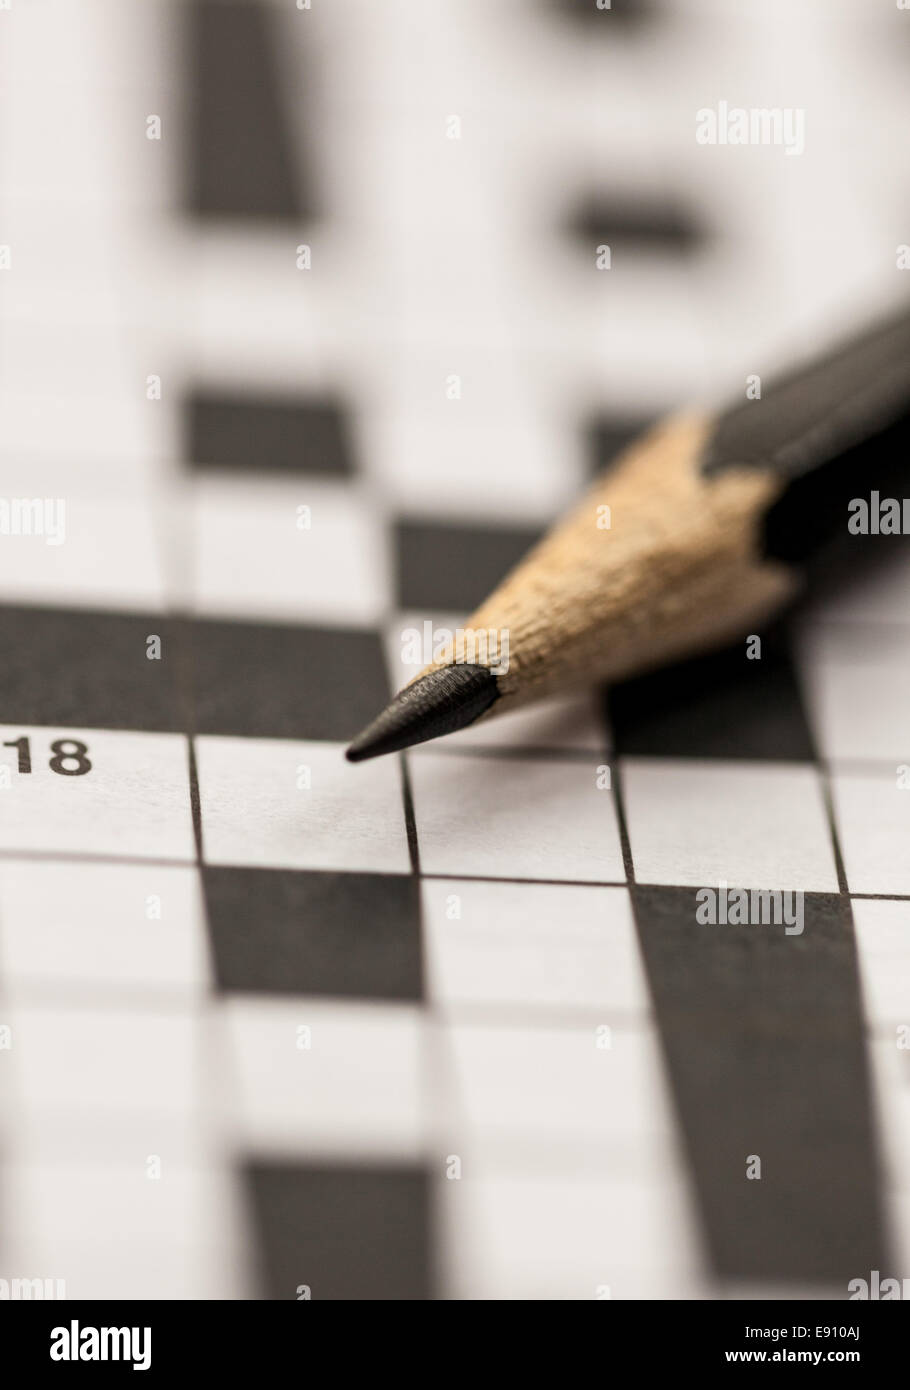 Crossword puzzle and a pencil Stock Photo: 74395626 - Alamy